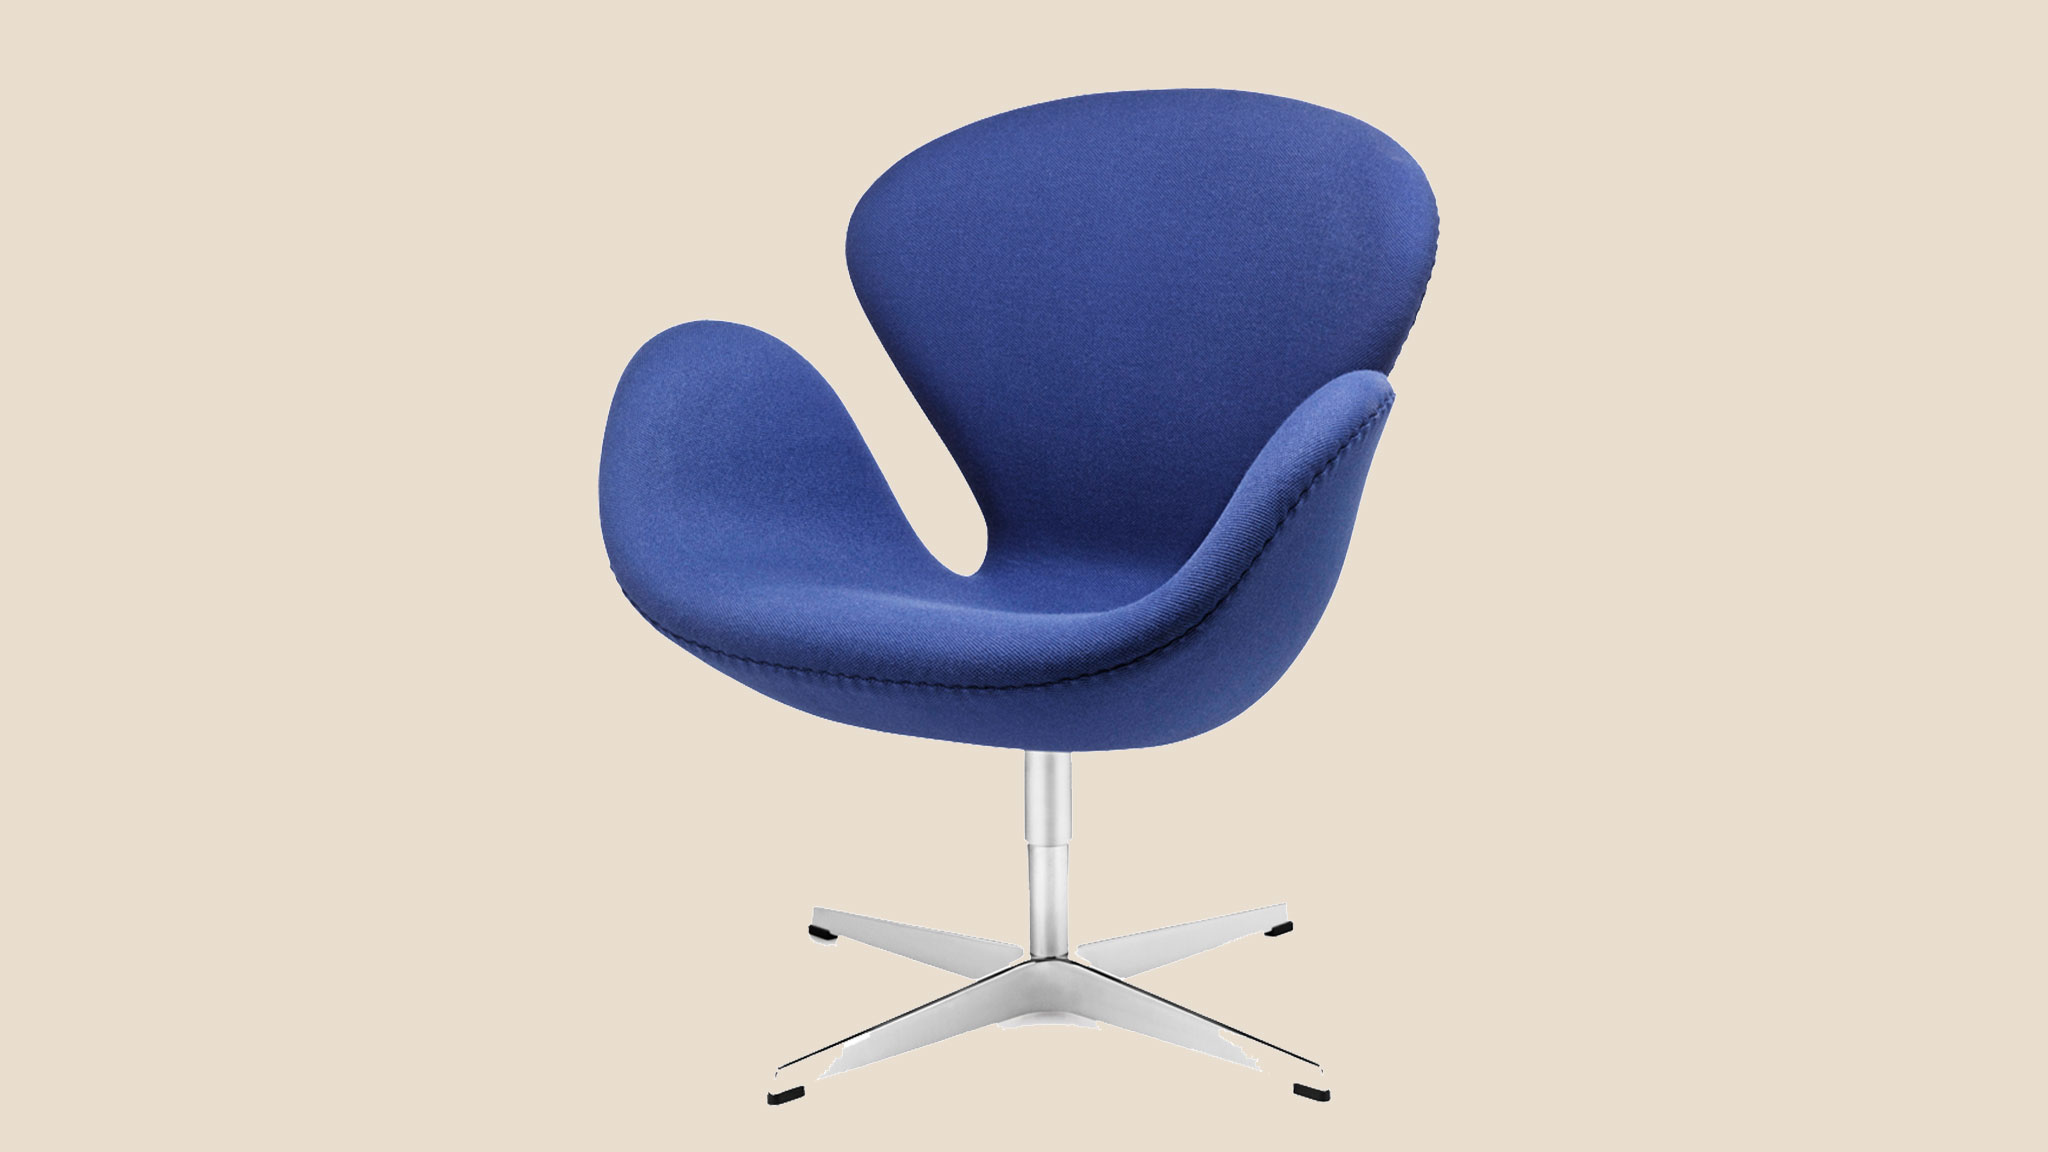 Design classic The Swan chair by Arne Jacobsen